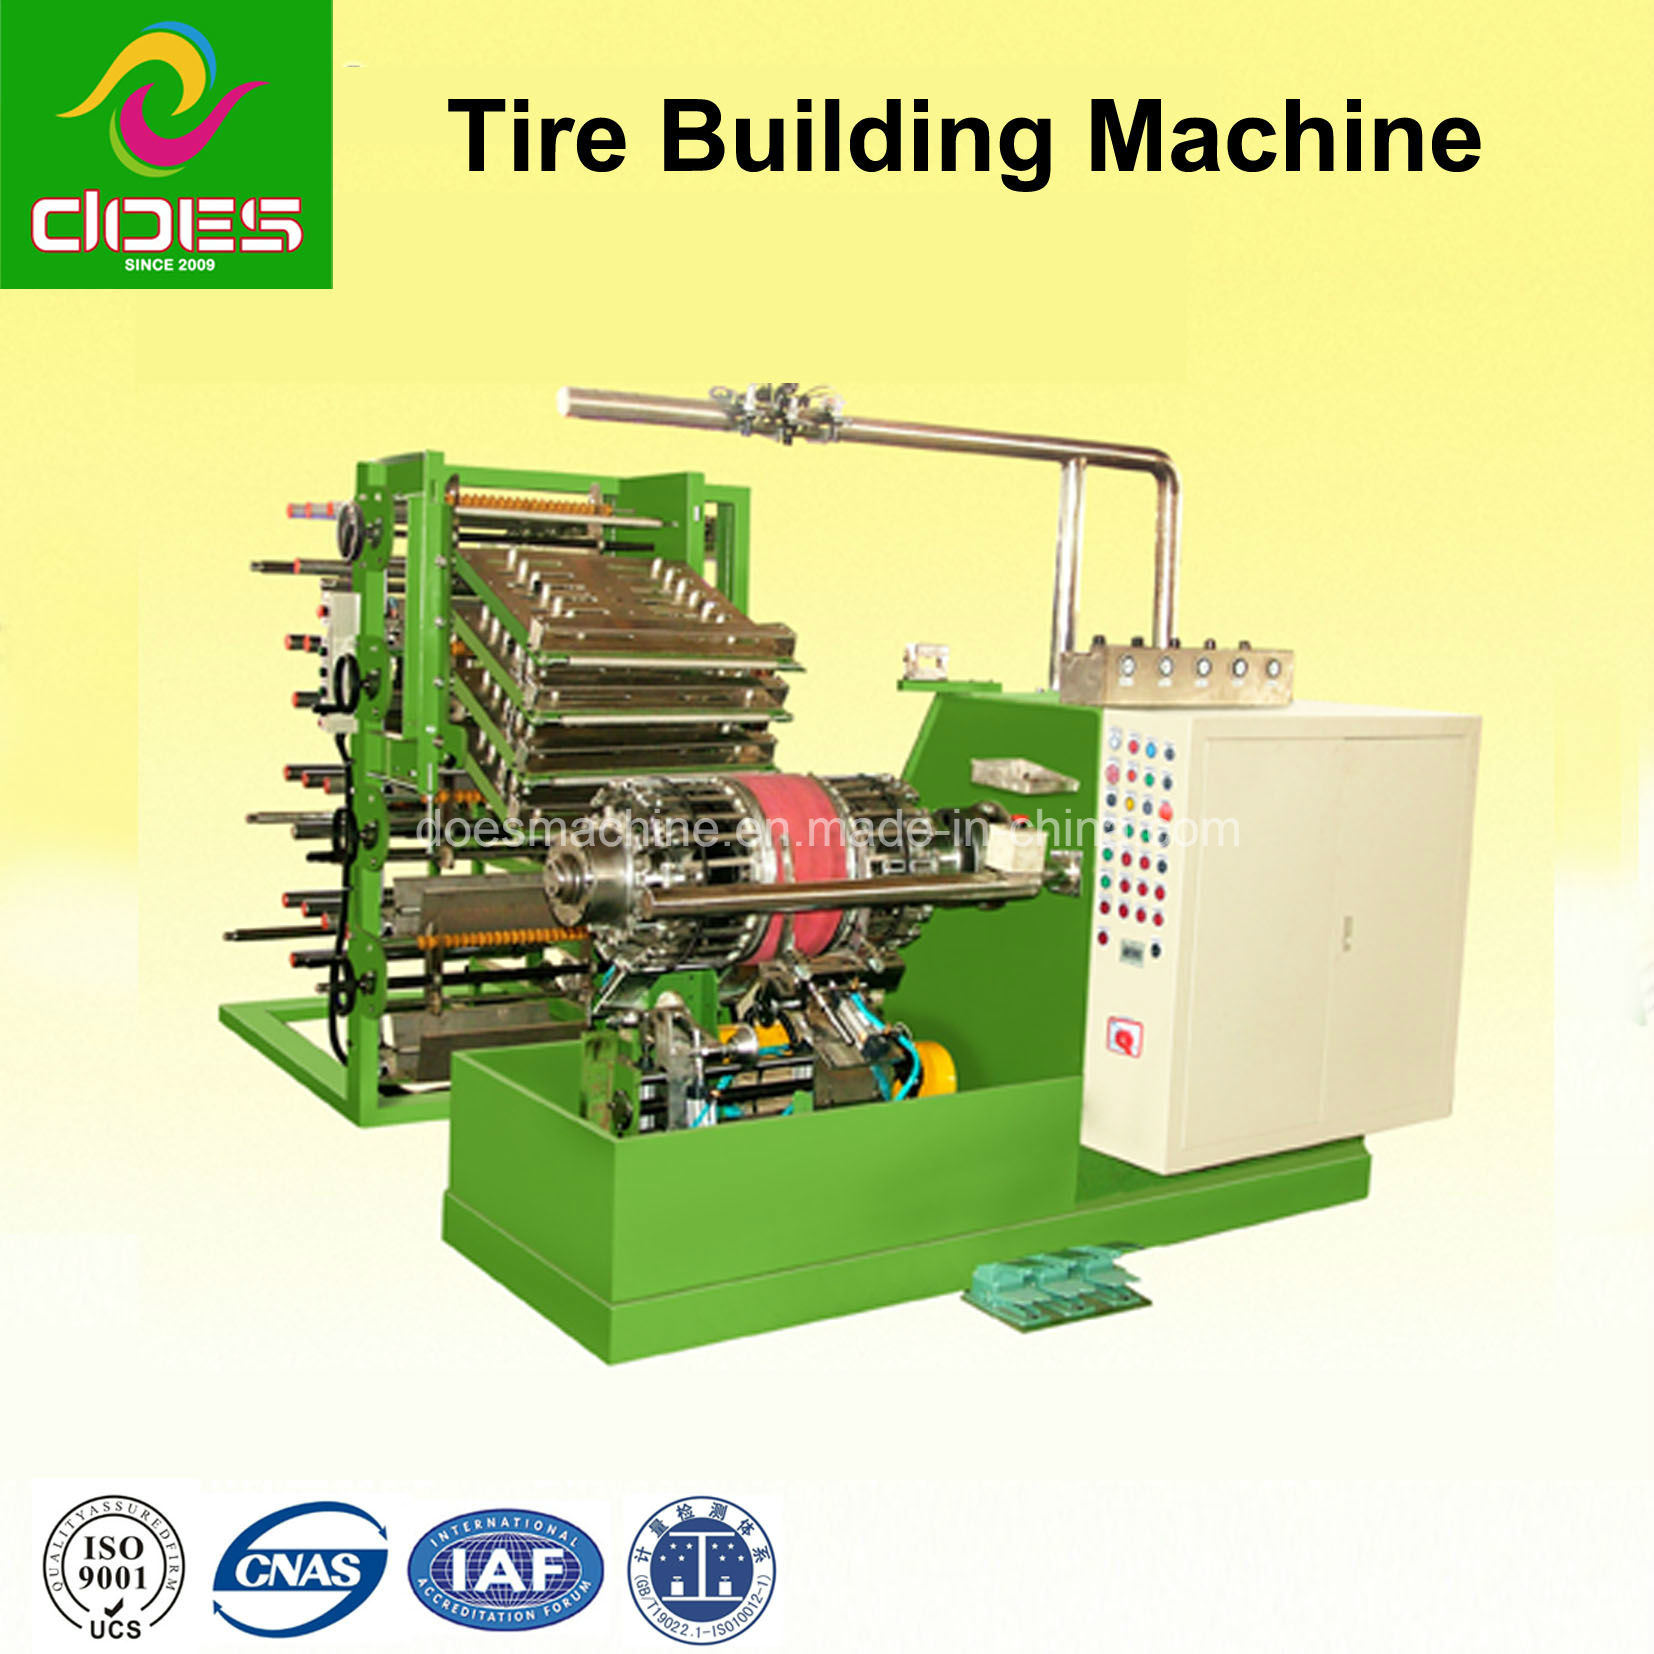 Spring Tire Building Machine for Motorcycles and Bicycles